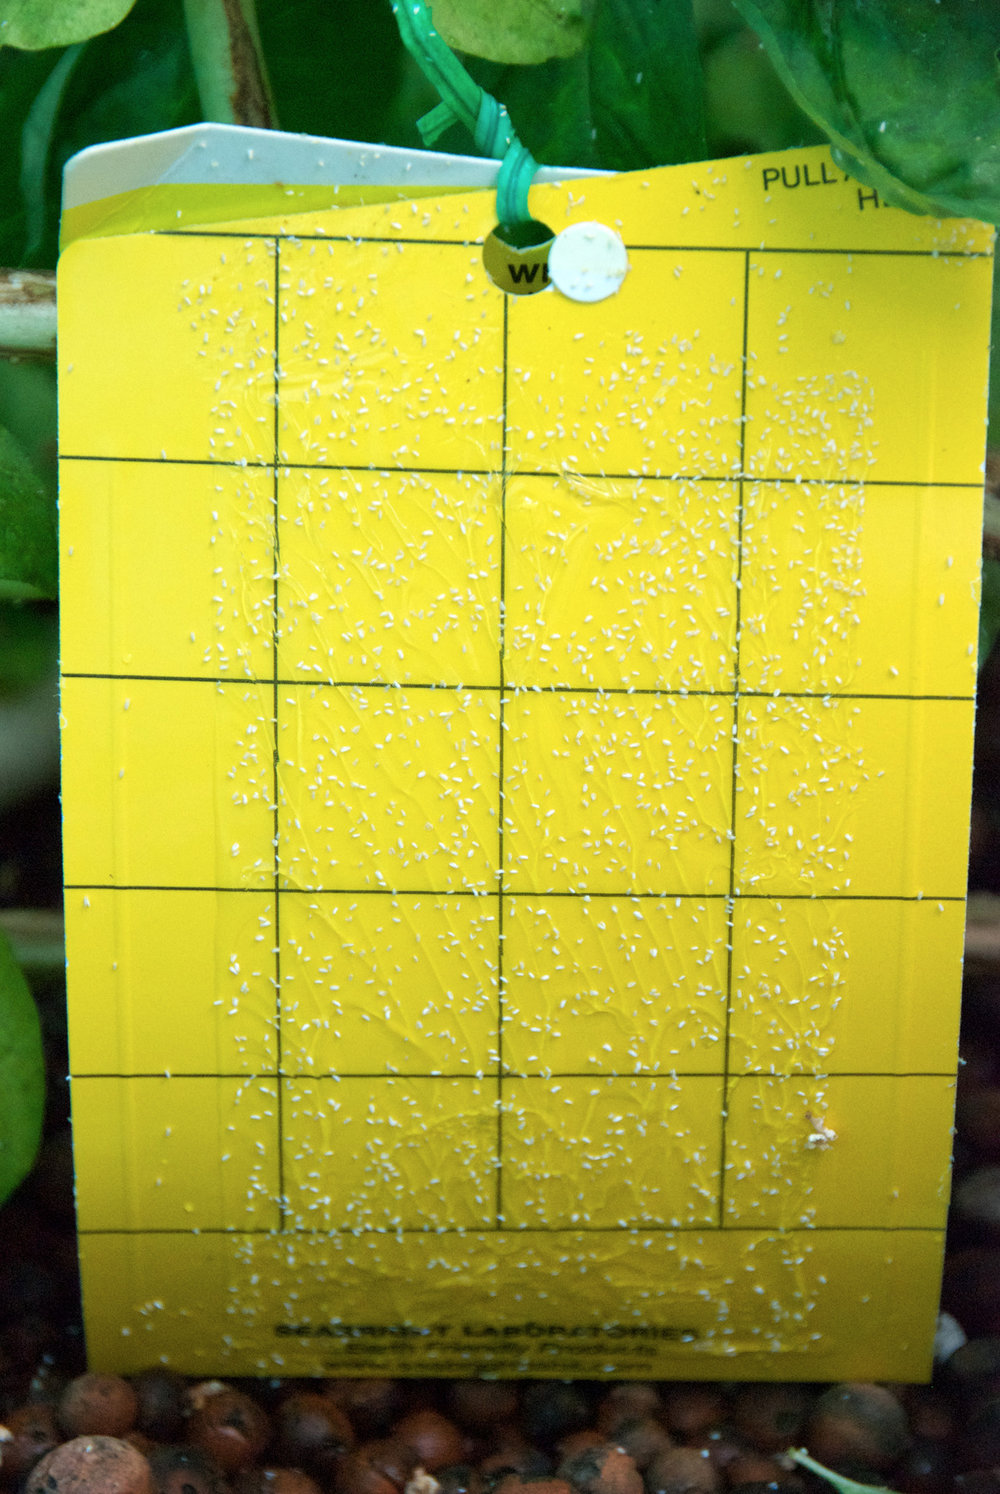 Yellow sticky traps - They may look a little ugly in your garden or a bit hectic in your greenhouse but they work a charm for catching the little buggers. The whiteflies are attracted to the colour yellow and so when they come into contact with the card the sticky glue traps them! Gotcha!